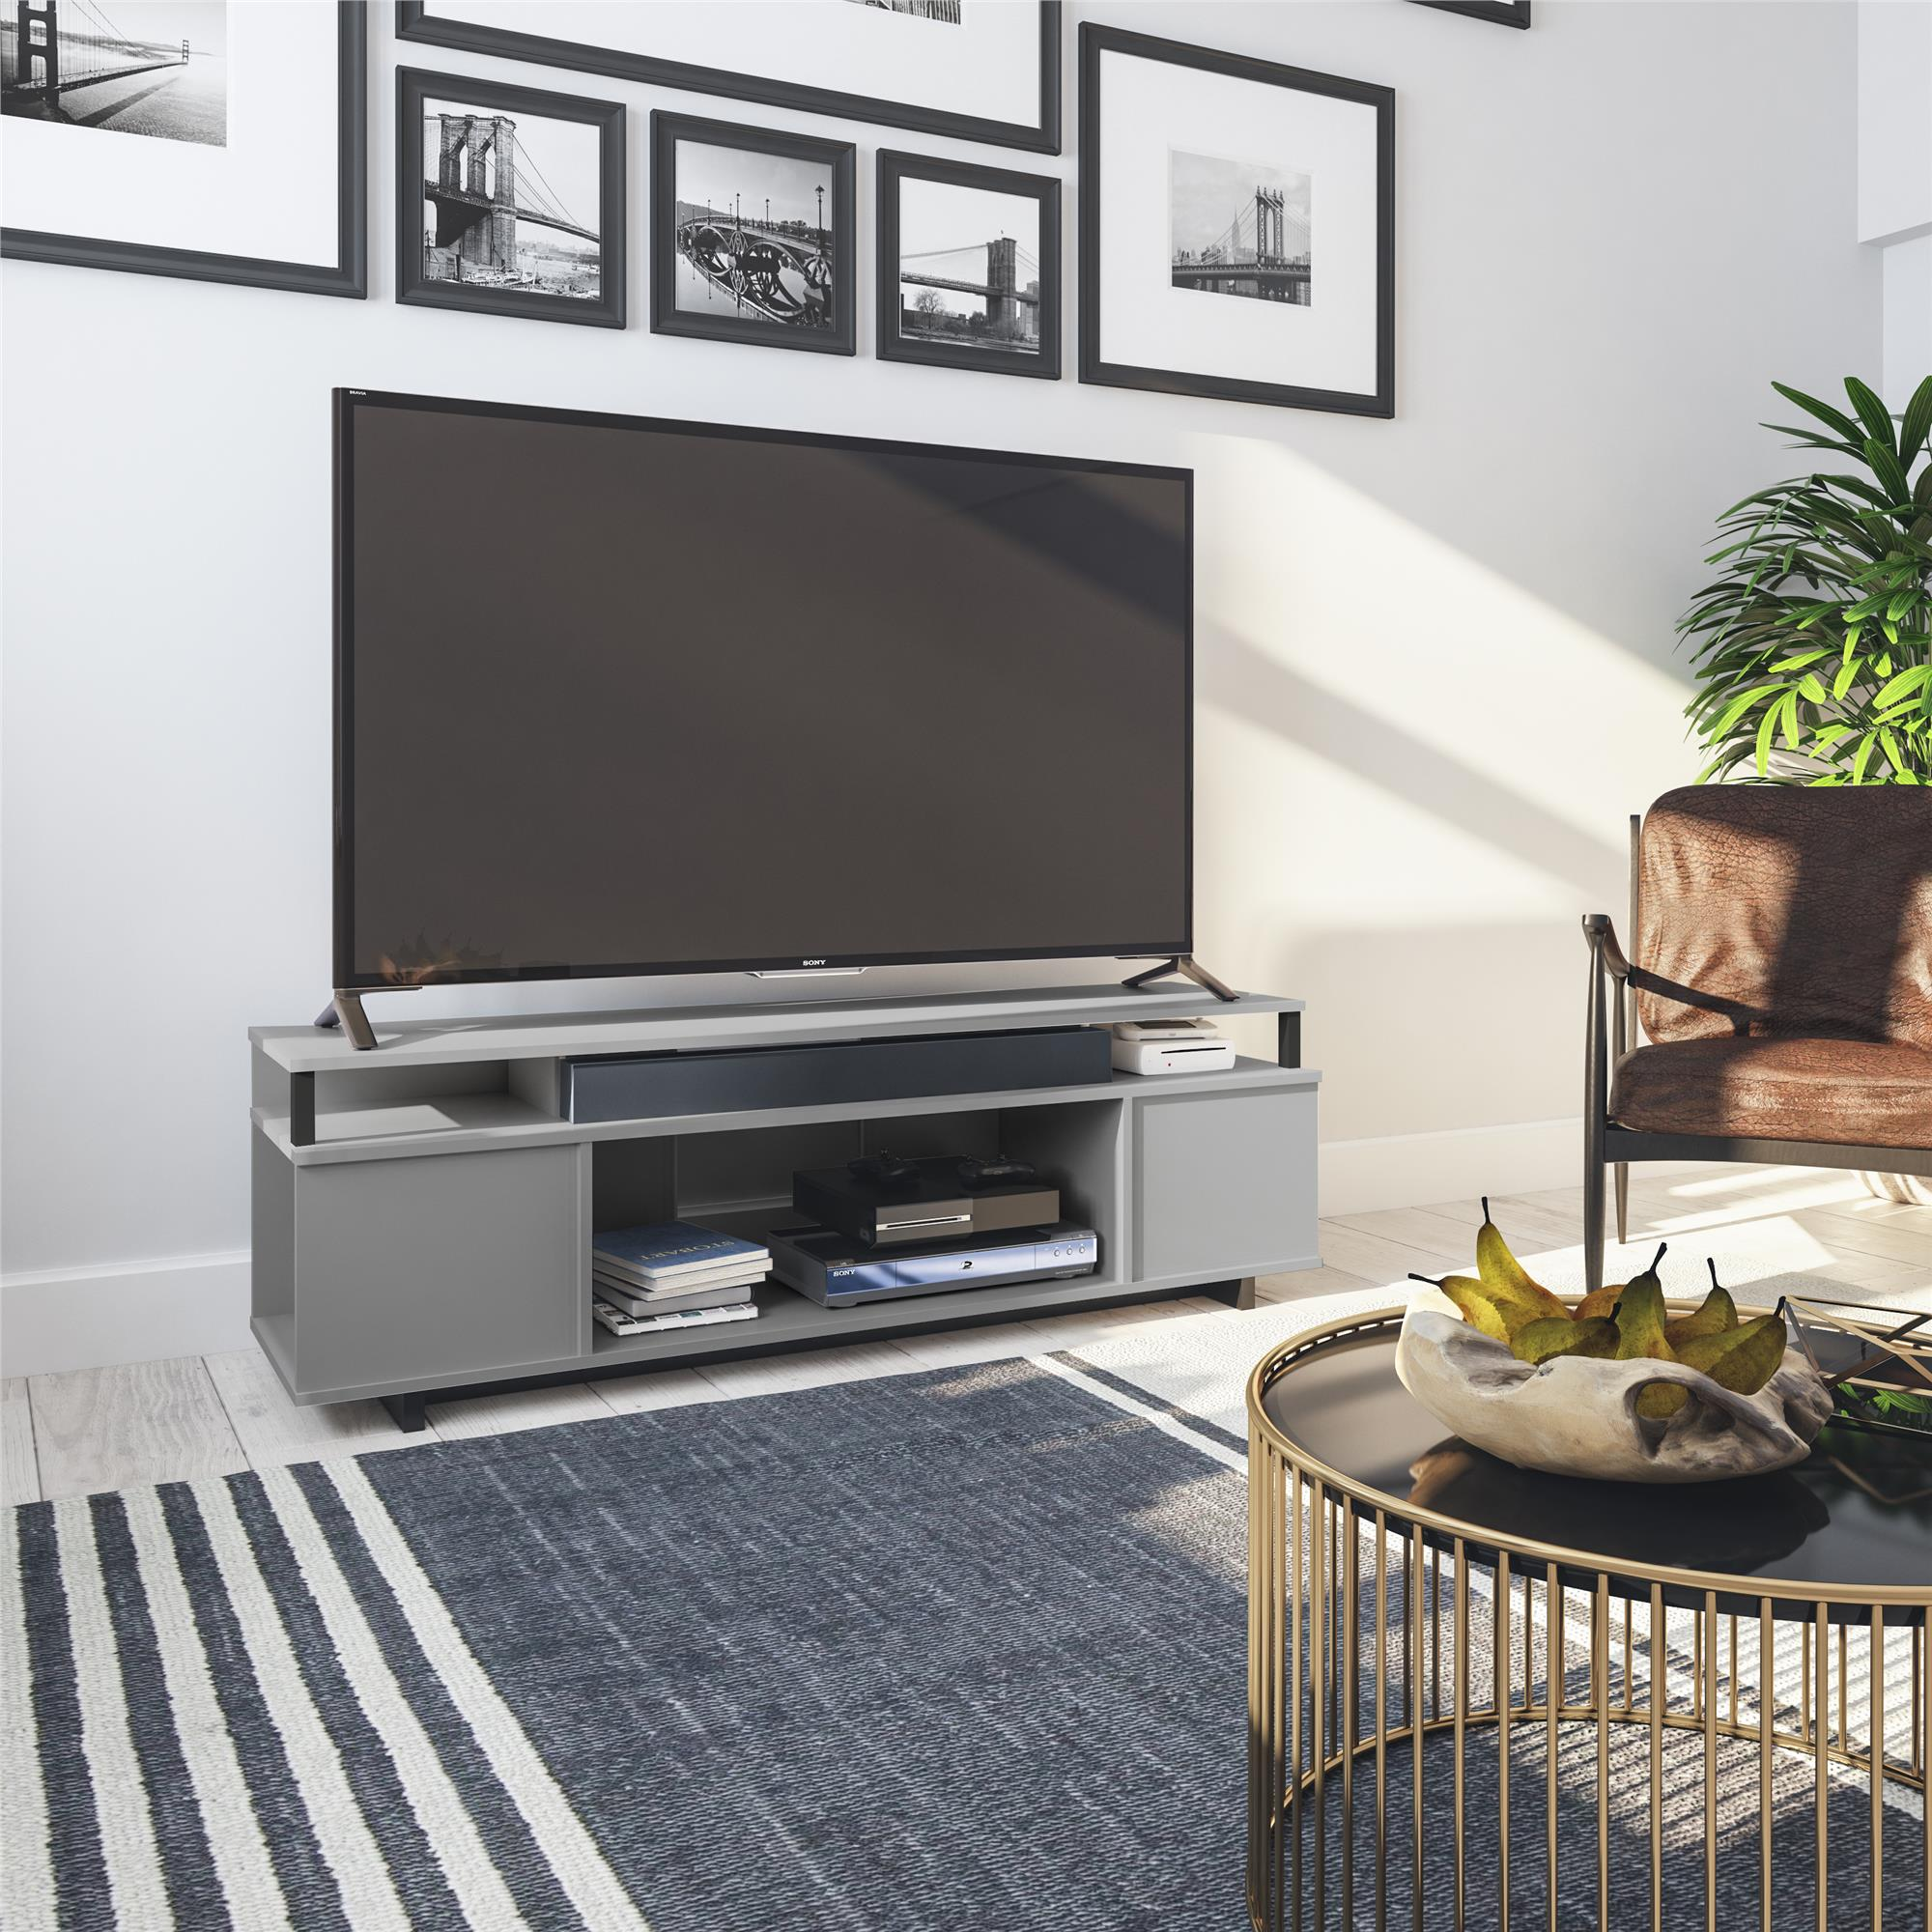 Ameriwood Home TV Stand ONLY $59 Shipped (Reg $89)